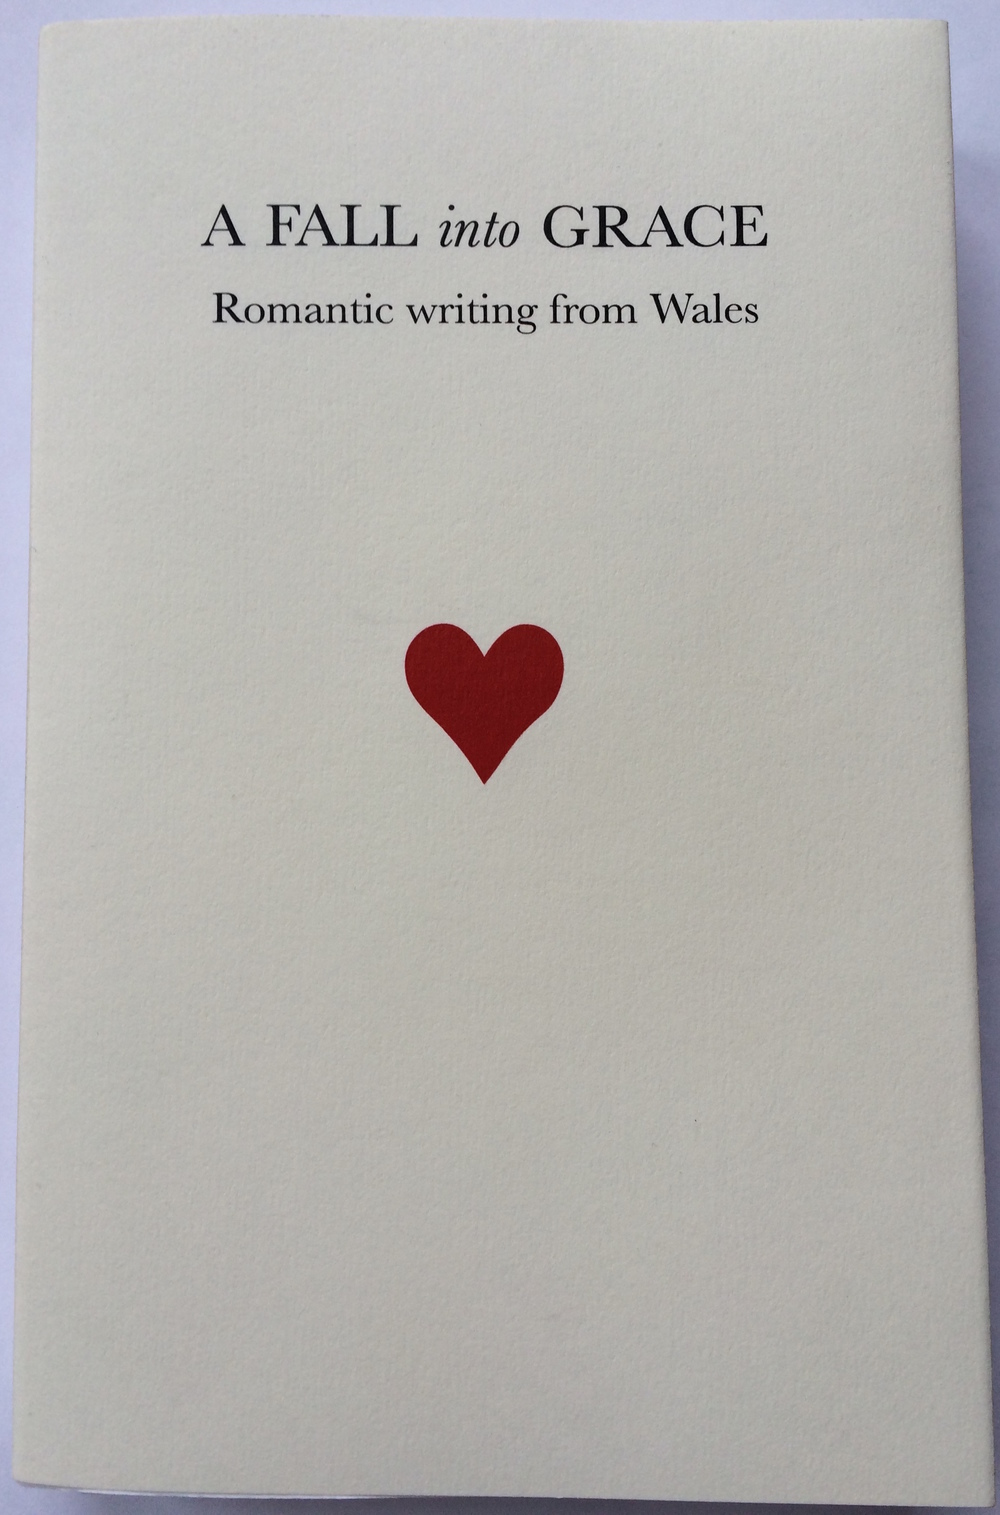 'A Fall into Grace romantic writing from Wales'  paperback edition designed by: Jackie Chettur, published by Addo